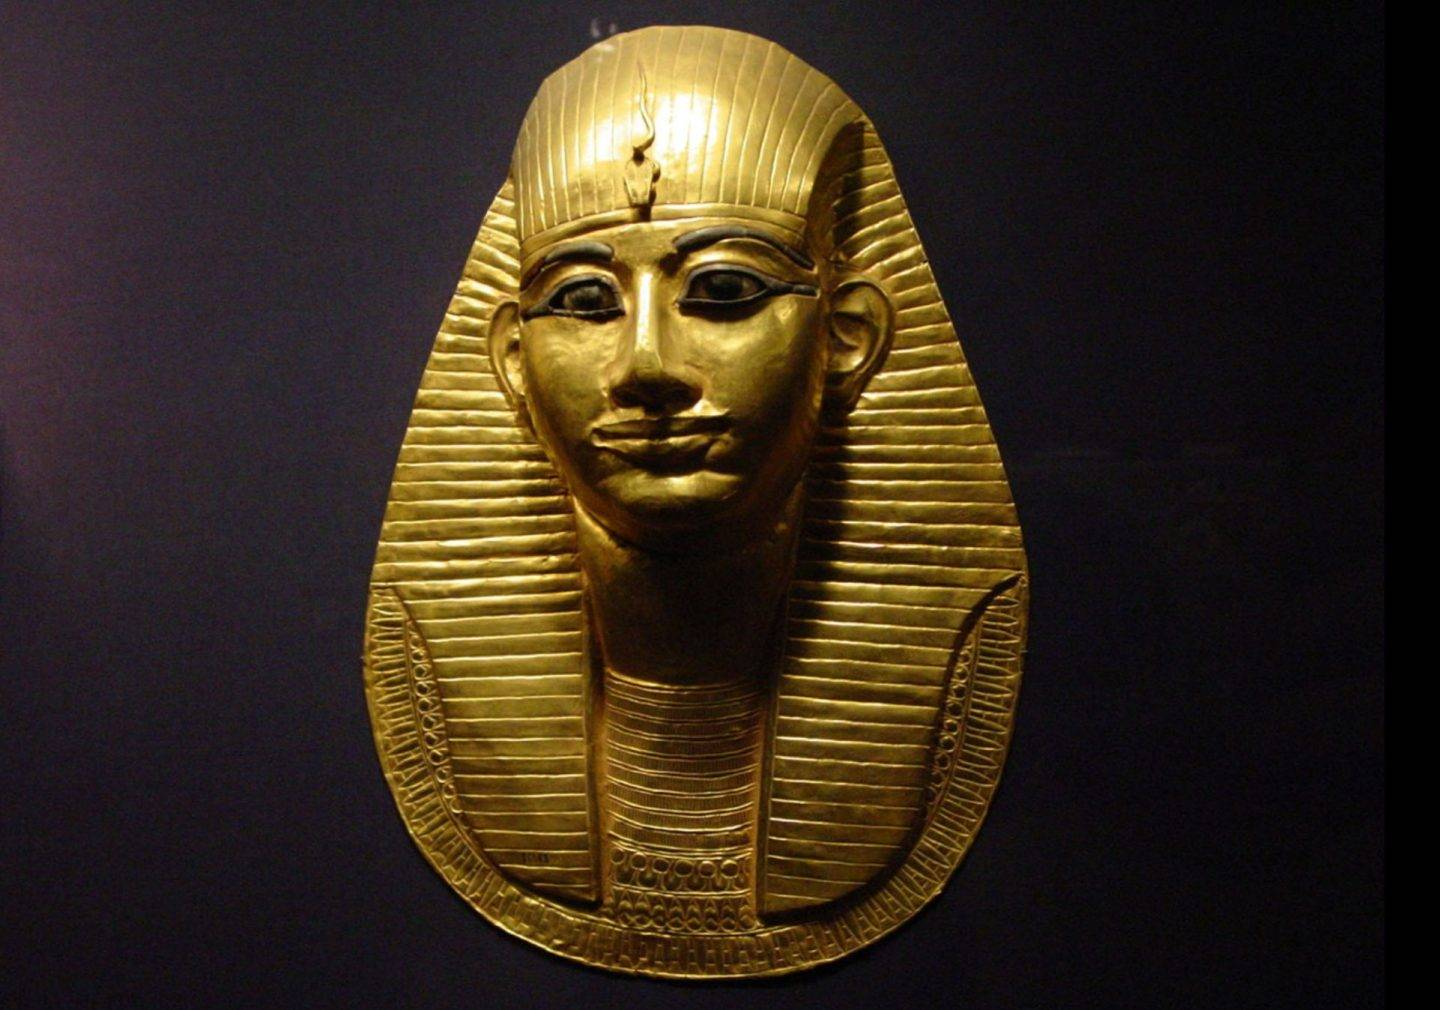 King Amenemope's tomb was discovered by French Egyptologists Pierre Montet and Georges Goyon in April 1940, just a month before the Nazi invasion of France.